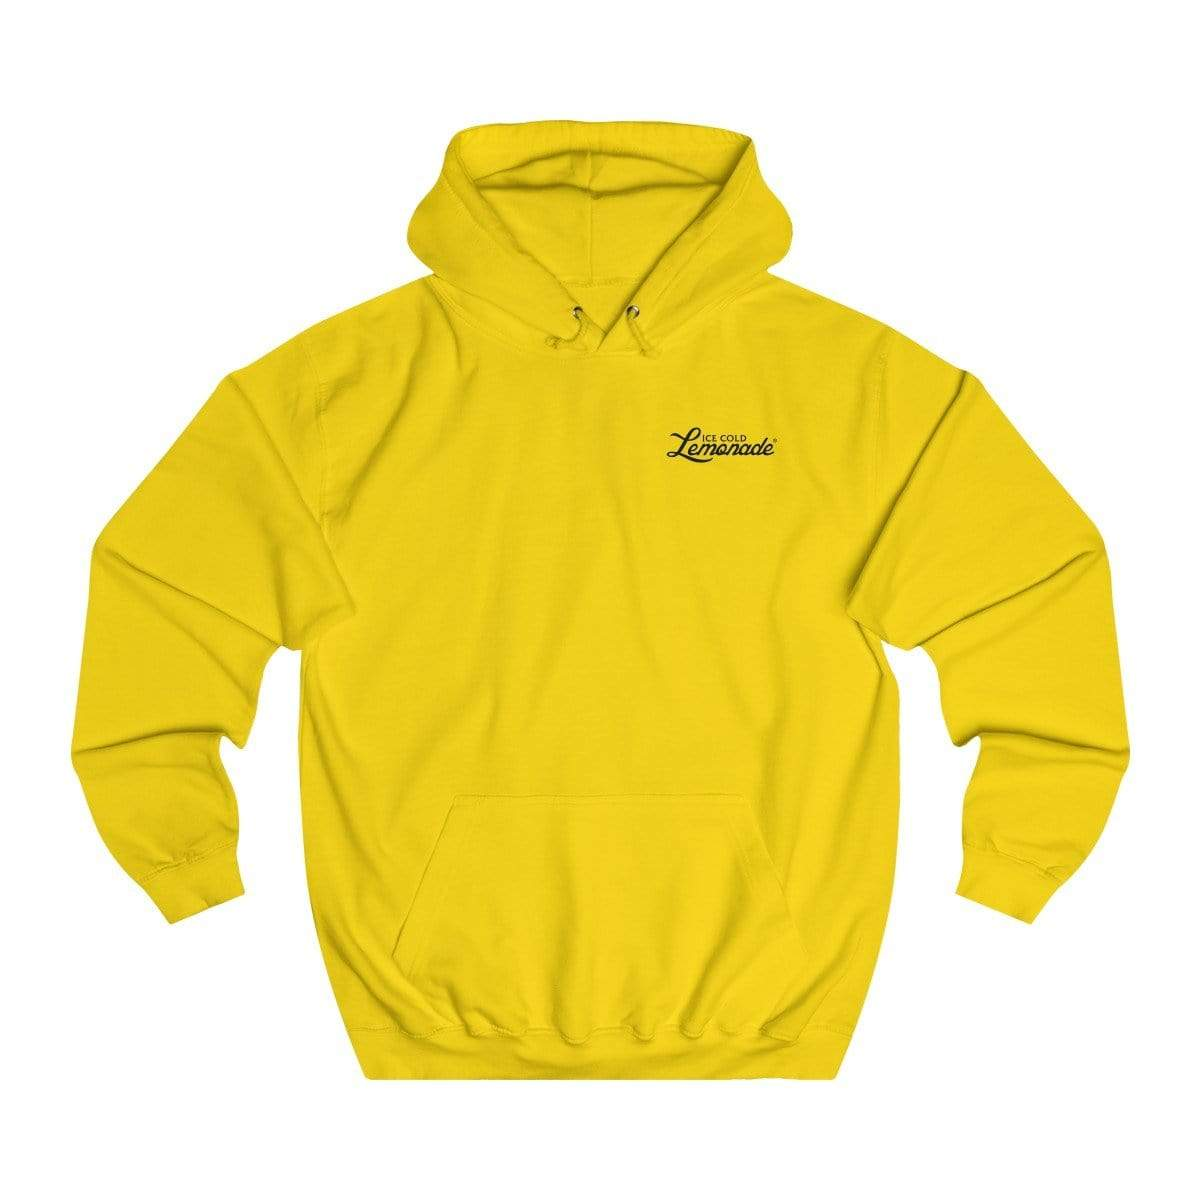 Don't Hate // Make Lemonade Hoodie - Ice Cold Lmnd Don't Hate // Make Lemonade Hoodie